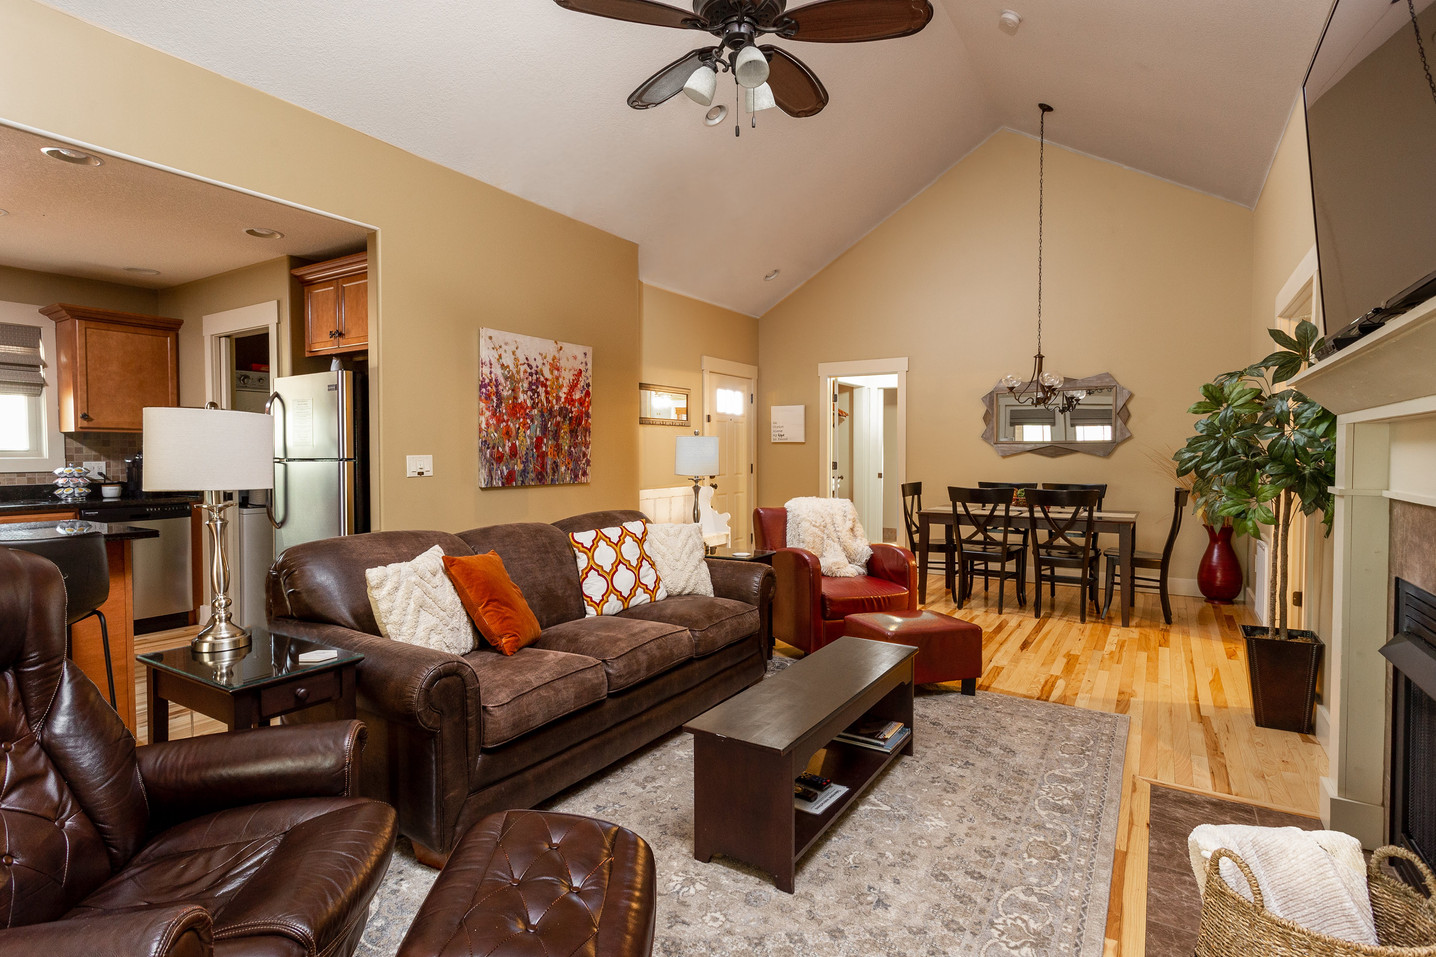 High quality ceiling fan and super large living area